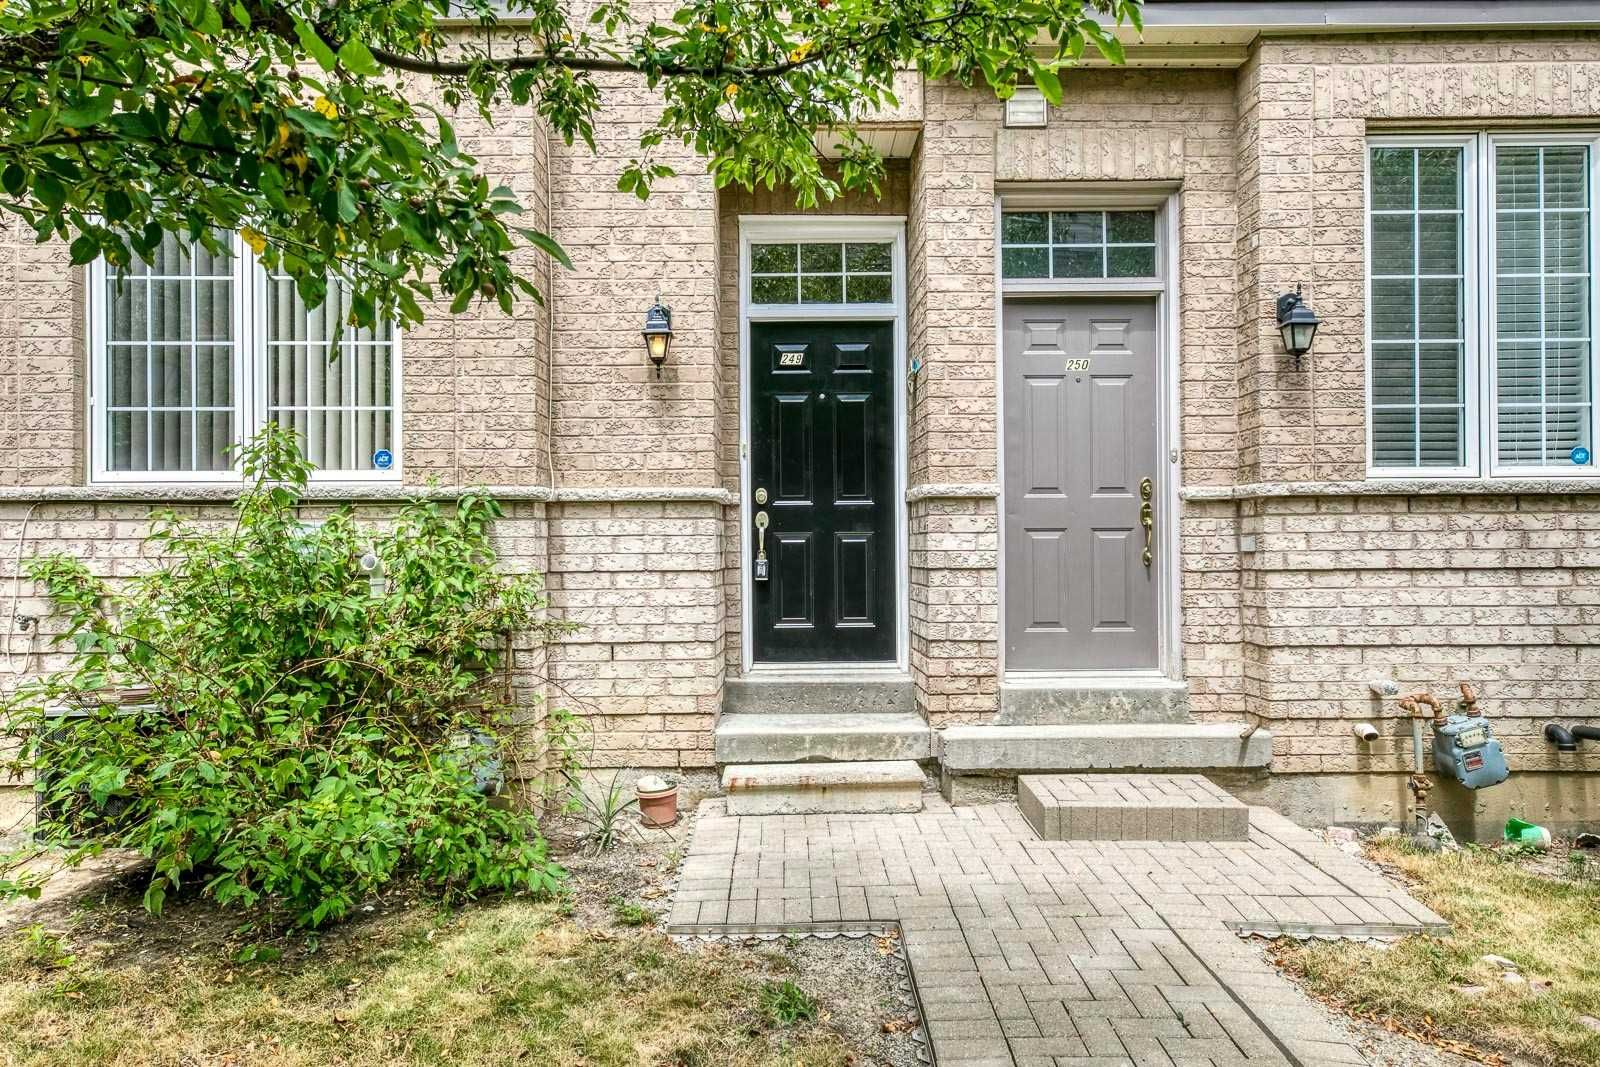 Main Photo: 249 23 Observatory Lane in Richmond Hill: Observatory Condo for sale : MLS®# N4886602